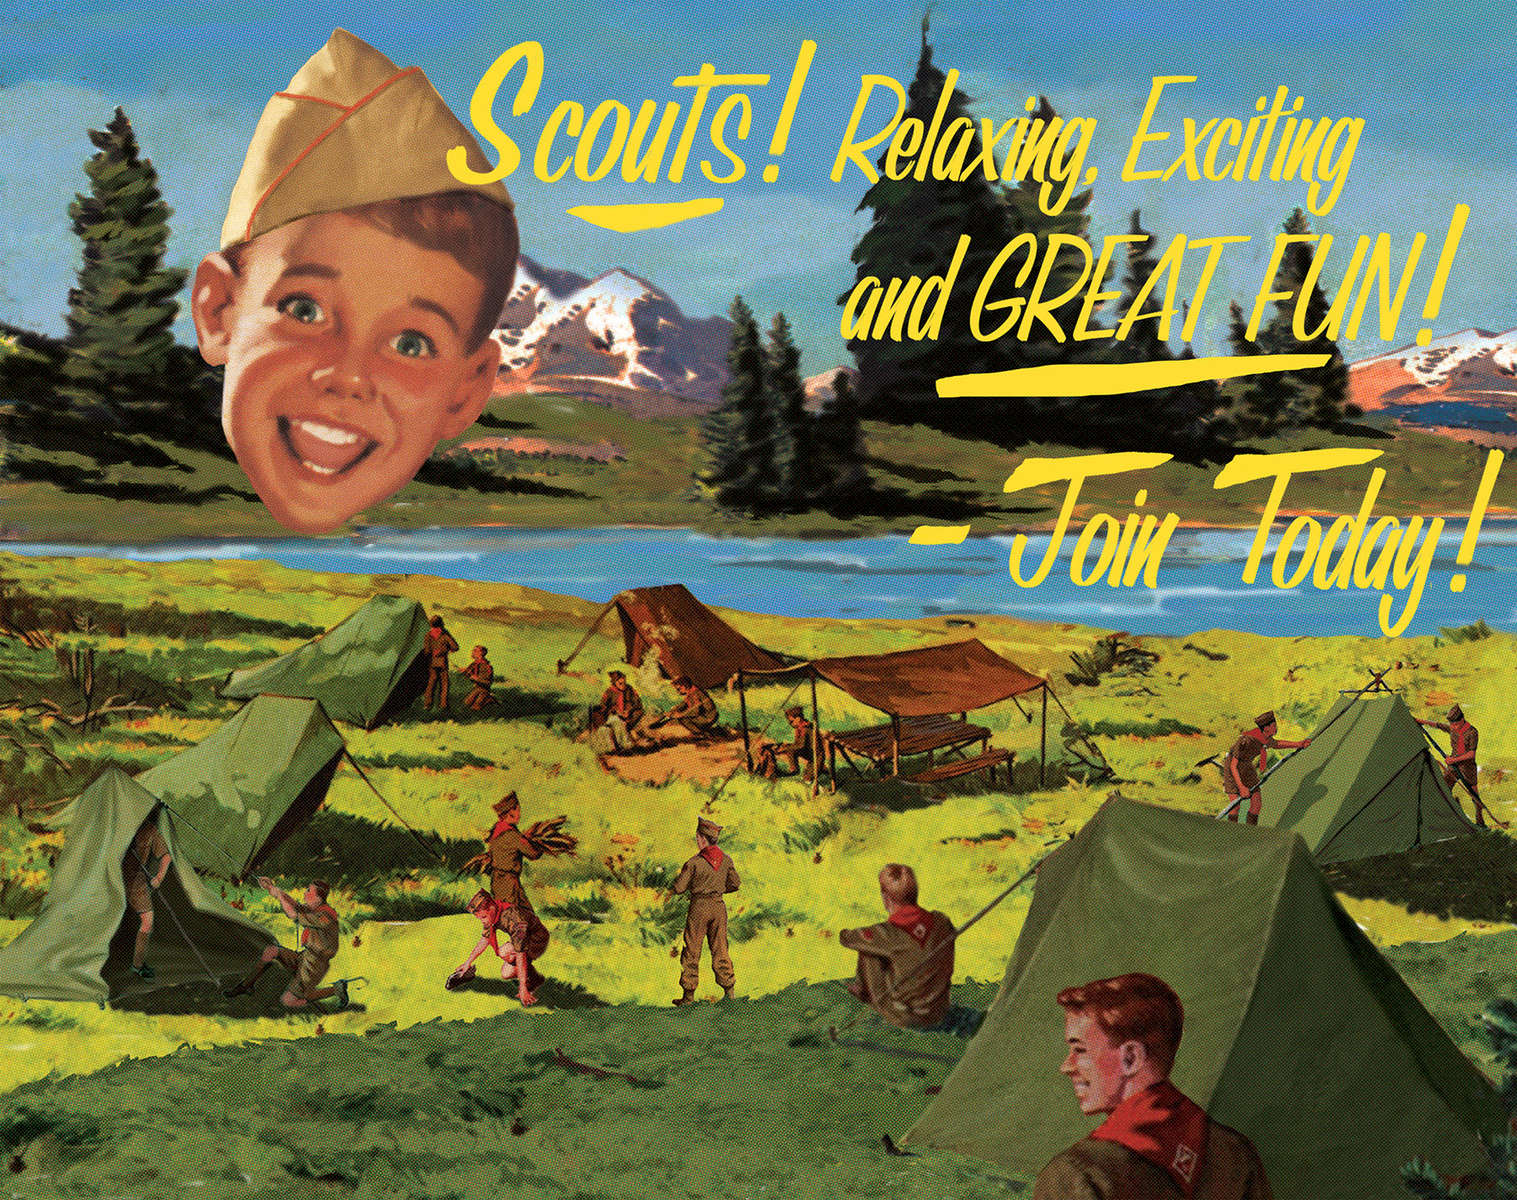 EC_Scout_Recruit